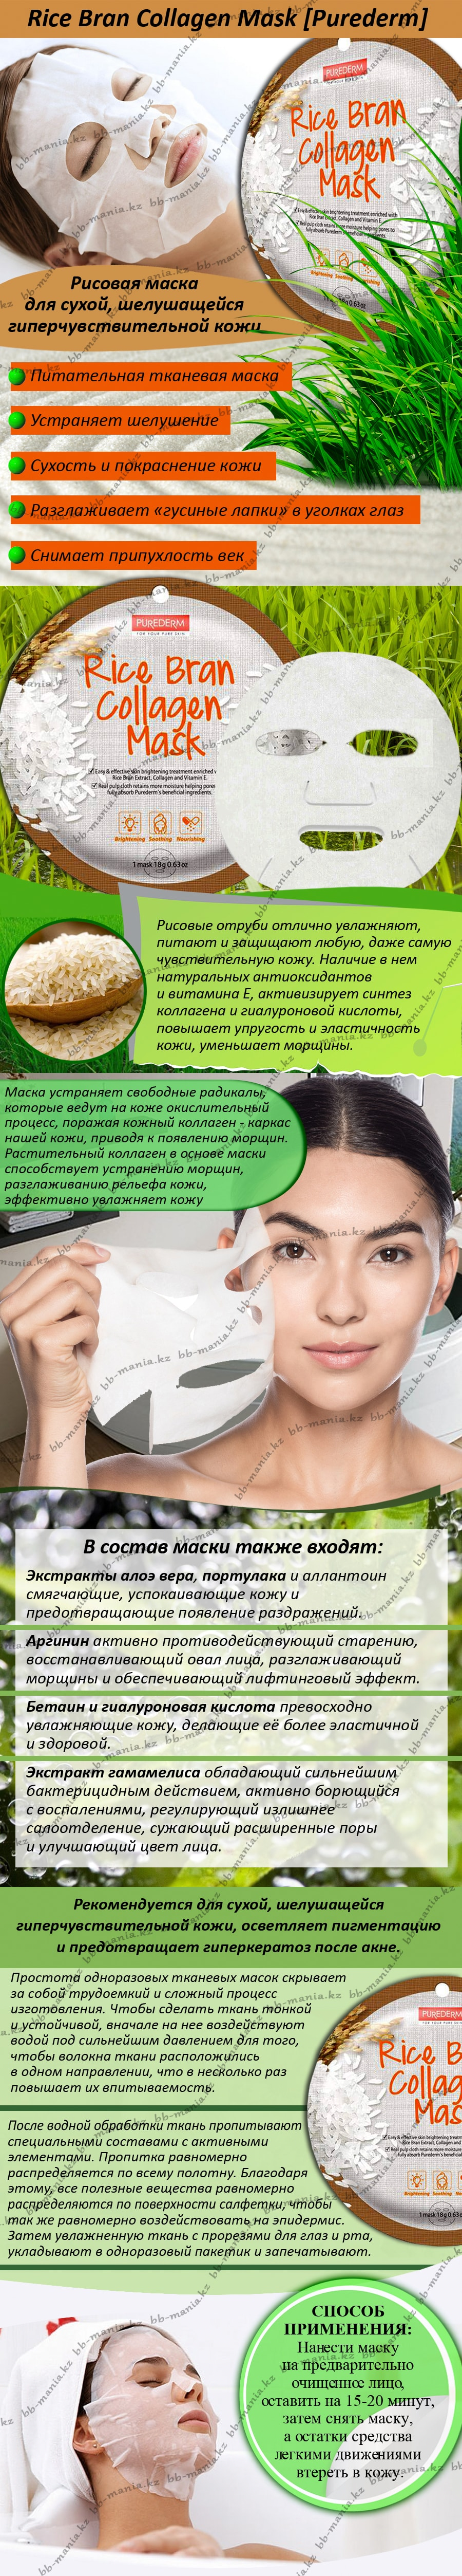 Rice-Bran-Collagen-Mask-[Purederm]bbmania-min